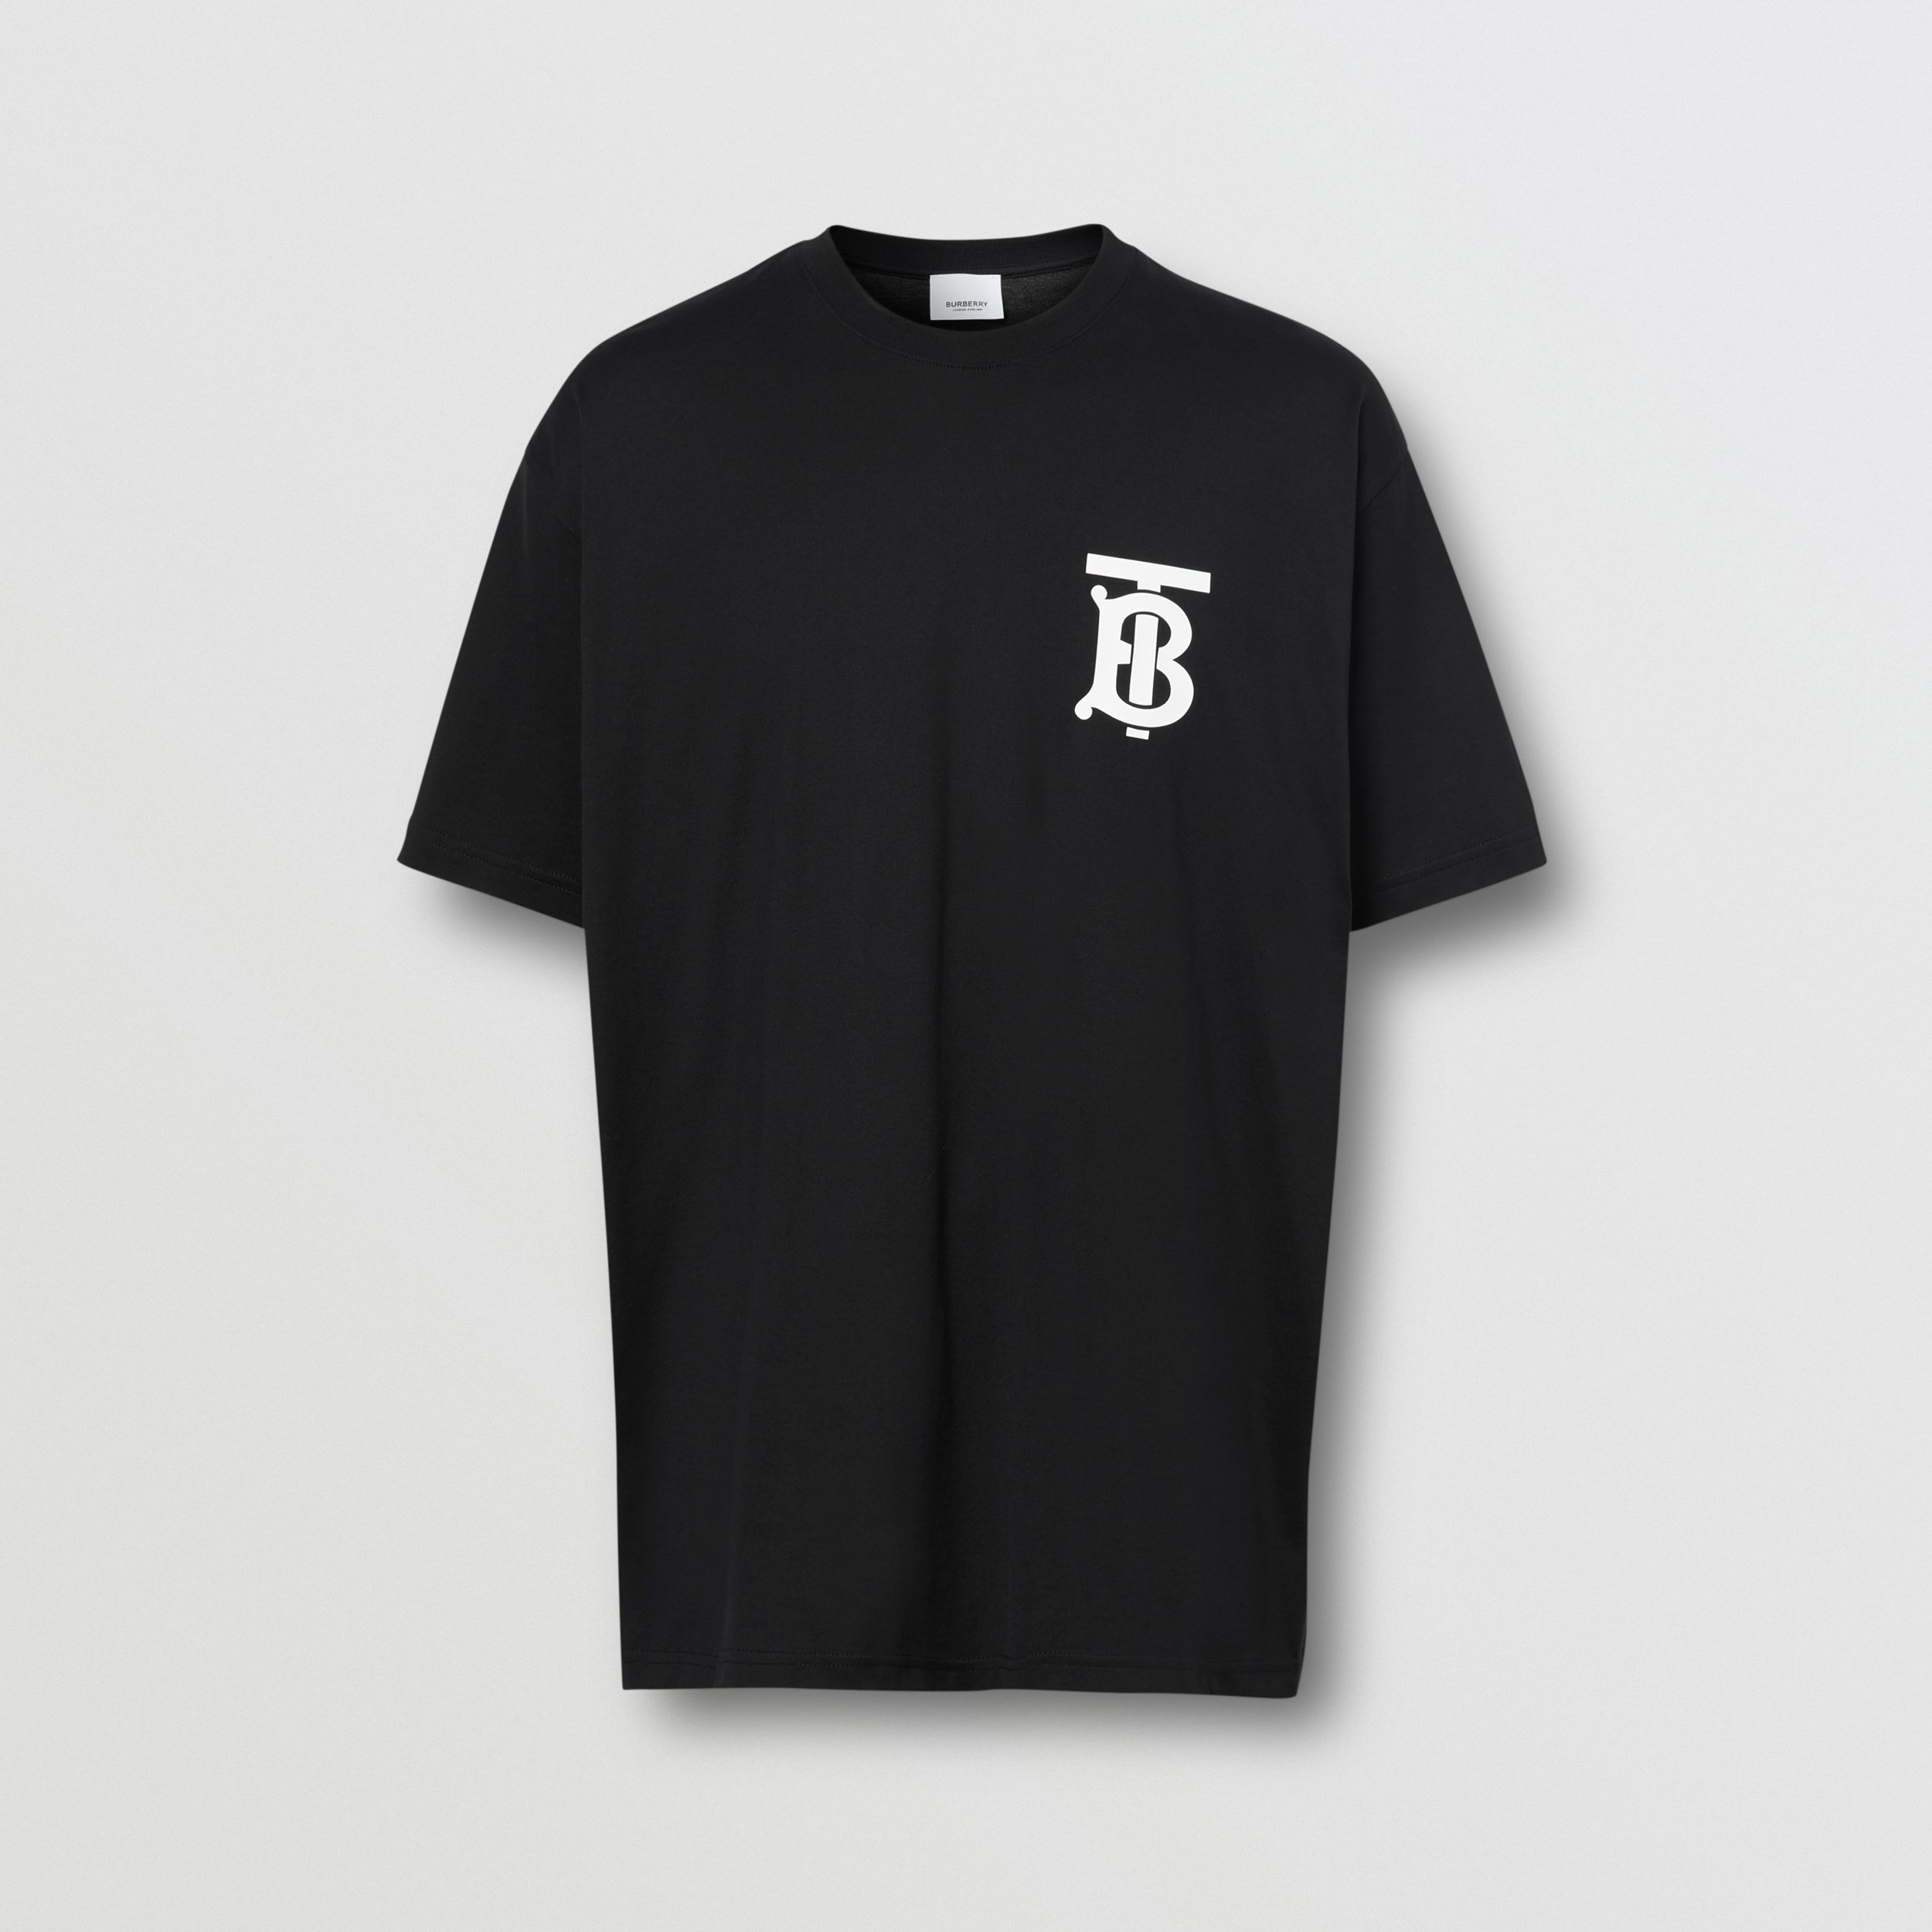 Monogram Motif Cotton Oversized T-shirt in Black - Men | Burberry Hong Kong S.A.R. - 4